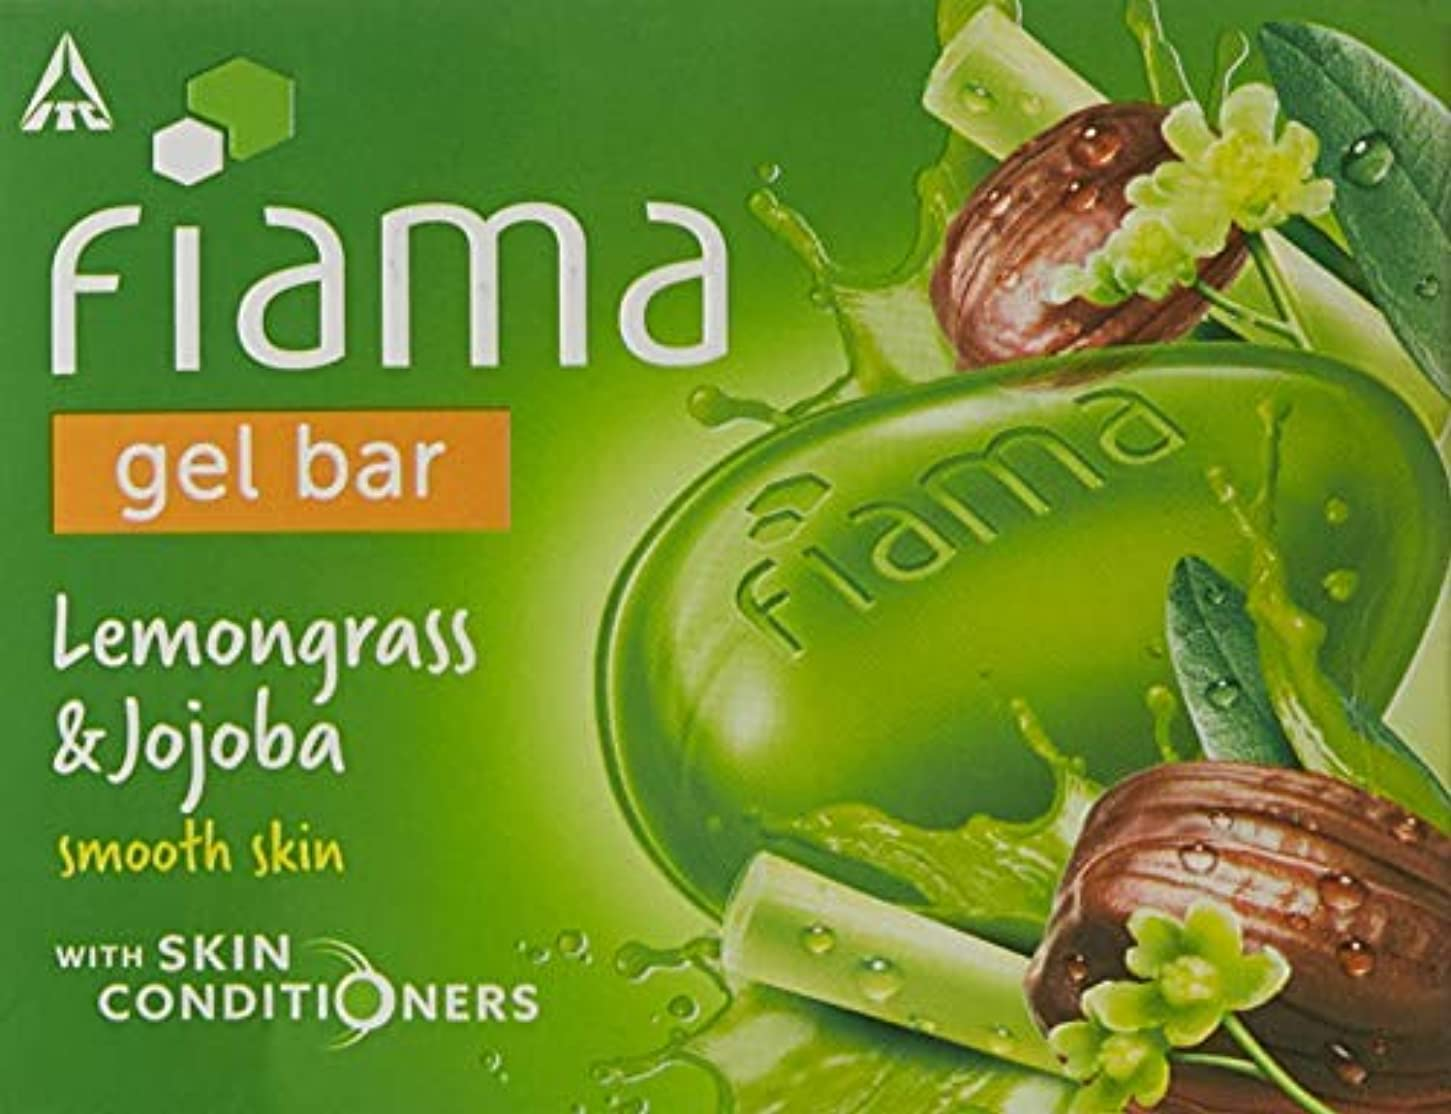 鬼ごっこ農業時Fiama Di Wills Lemongrass & Jojoba Gel Bar, 125g (Pack Of 3)